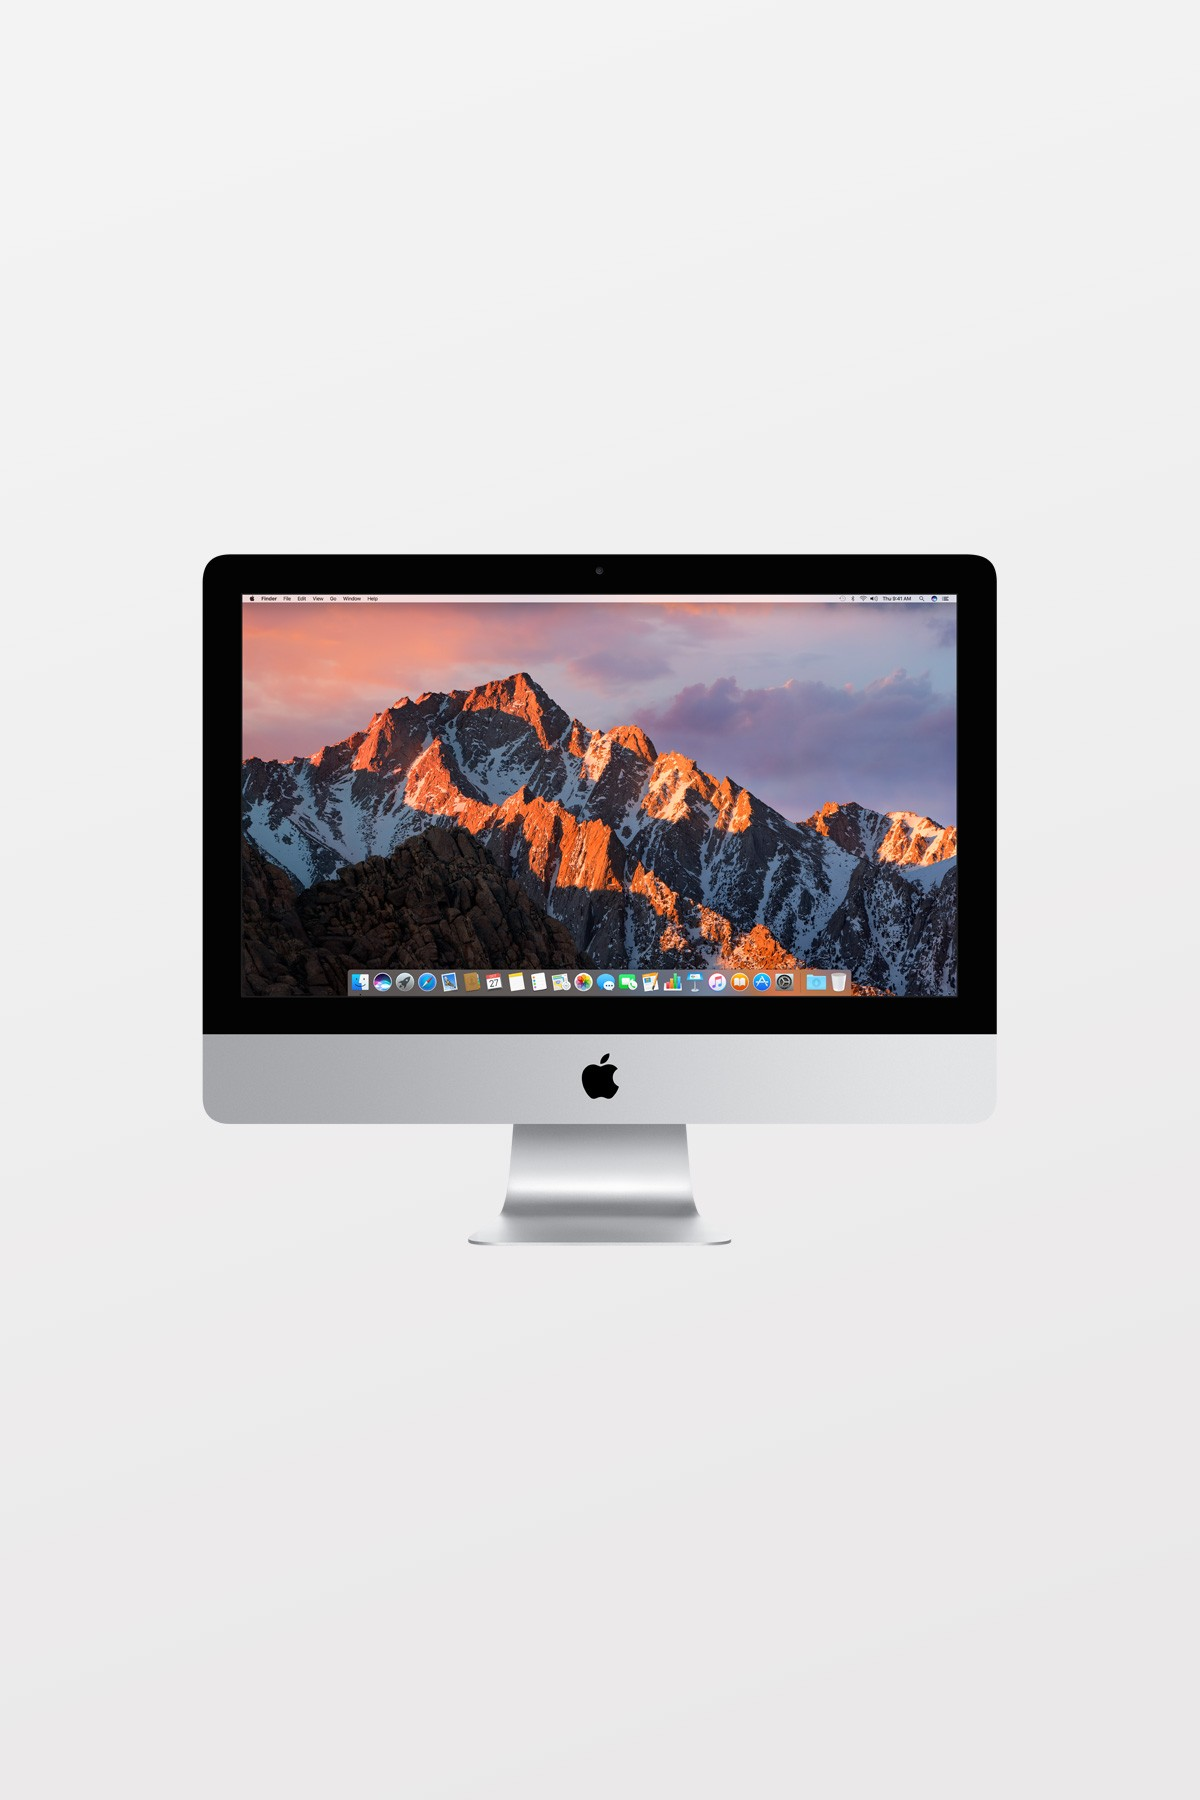 Apple iMac 21.5-inch (2.7GHz i5/8GB/1TB HDD/GeForce GT 640M 512MB) - Apple Certified Refurbished